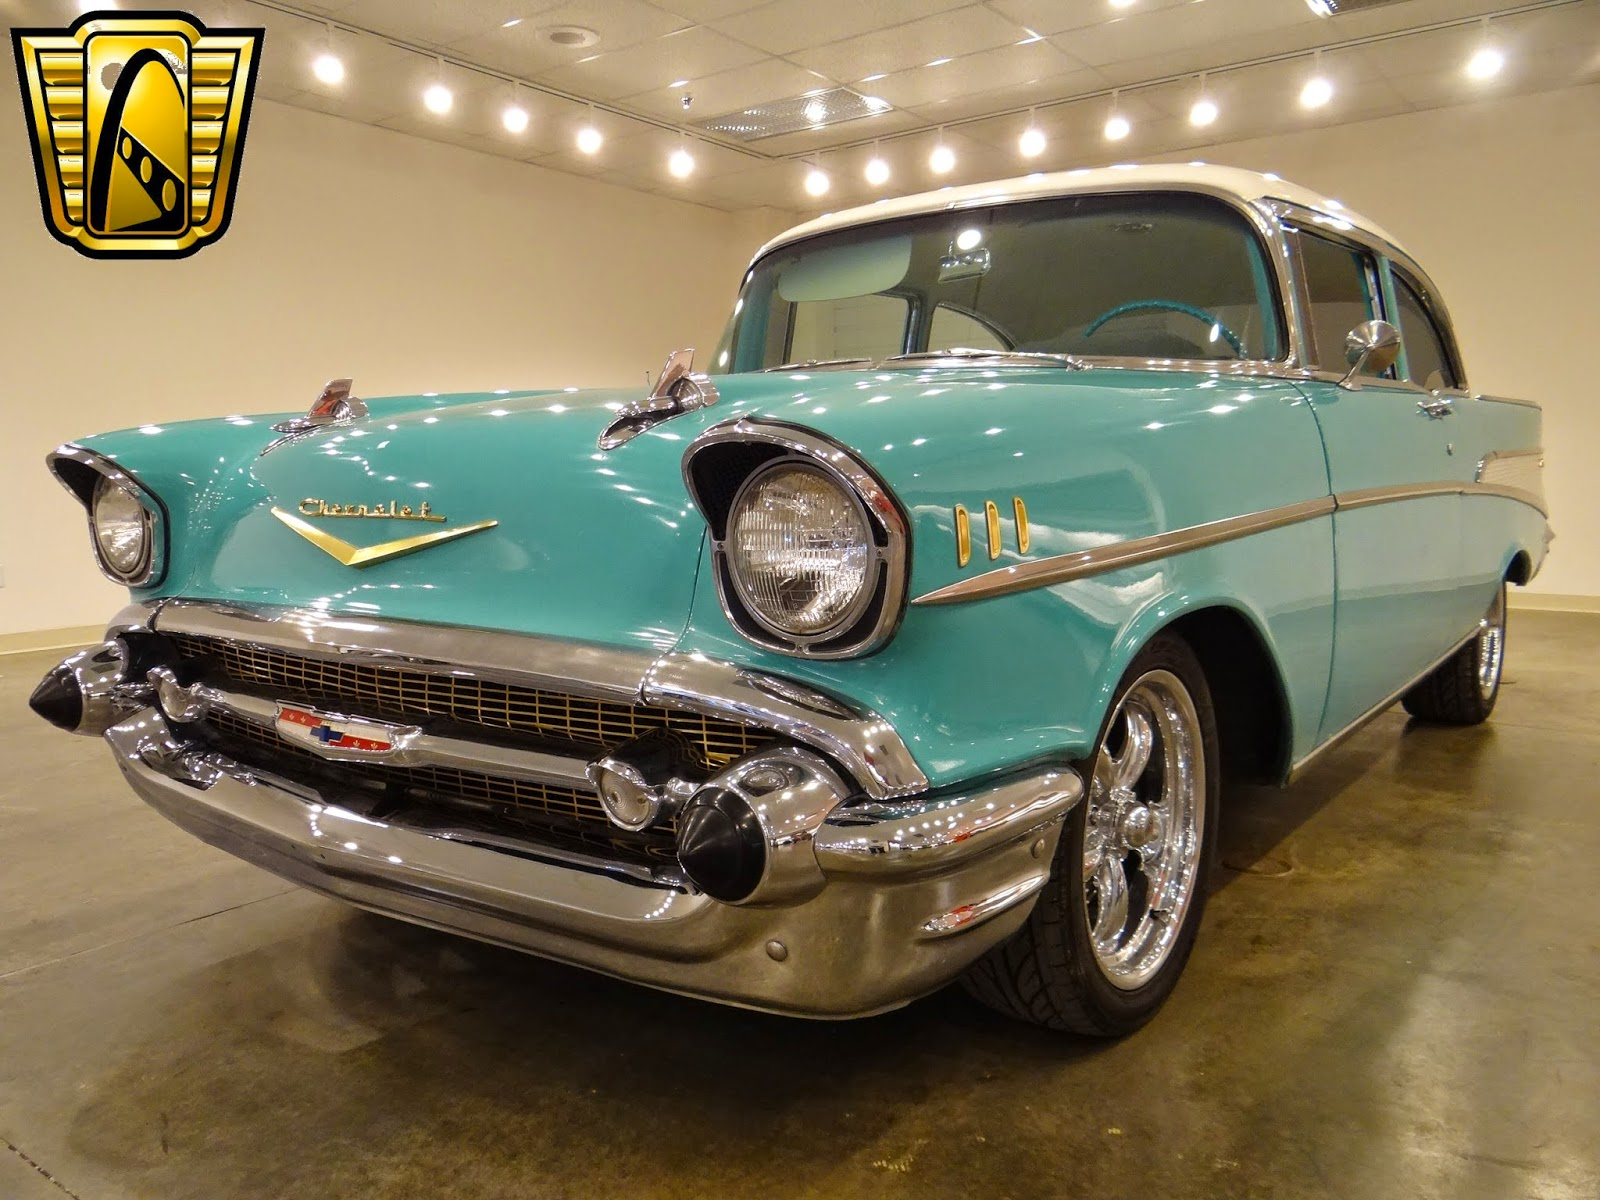 Cars 1957 Chevrolet Bel Air Uni Ads 57 Chevy Rear Bumper The Is Easily One Of Most Recognizable Ever Produced And Loved By All This Painted In A Classic Two Tone Teal White